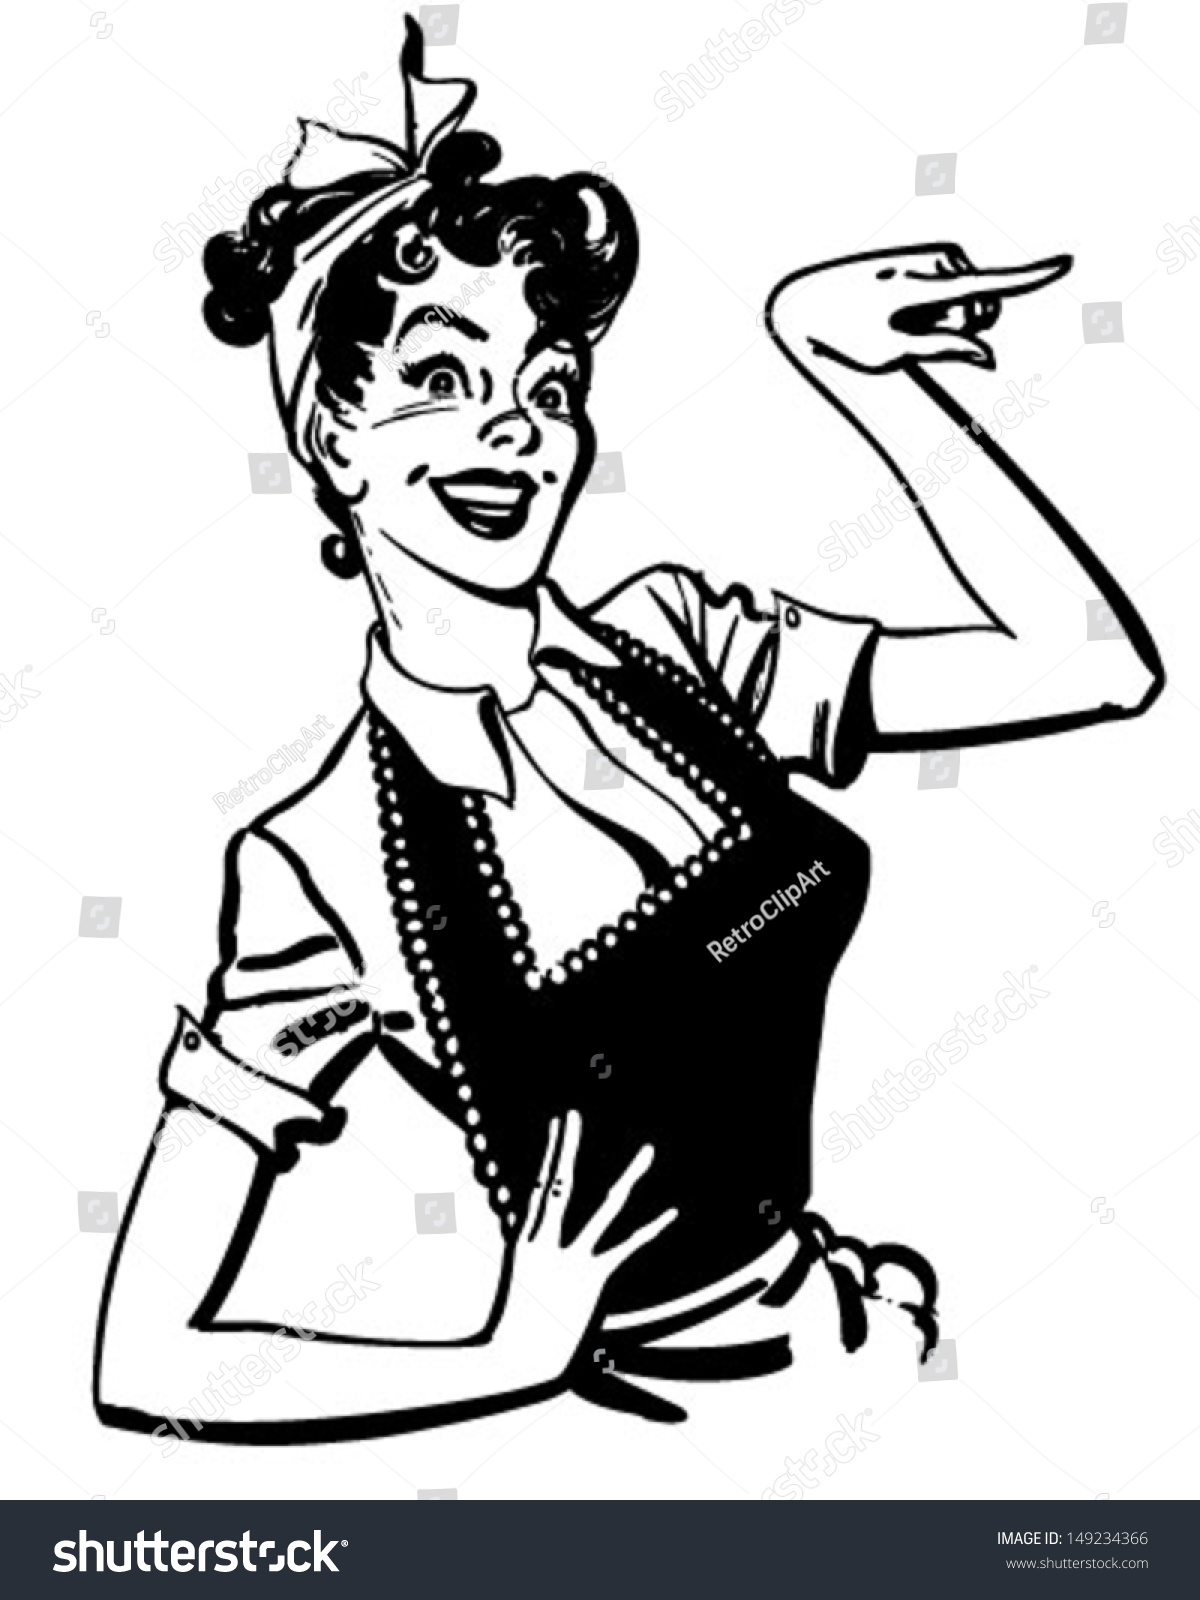 Pointing Housewife Retro Clip Art Illustration Stock ...